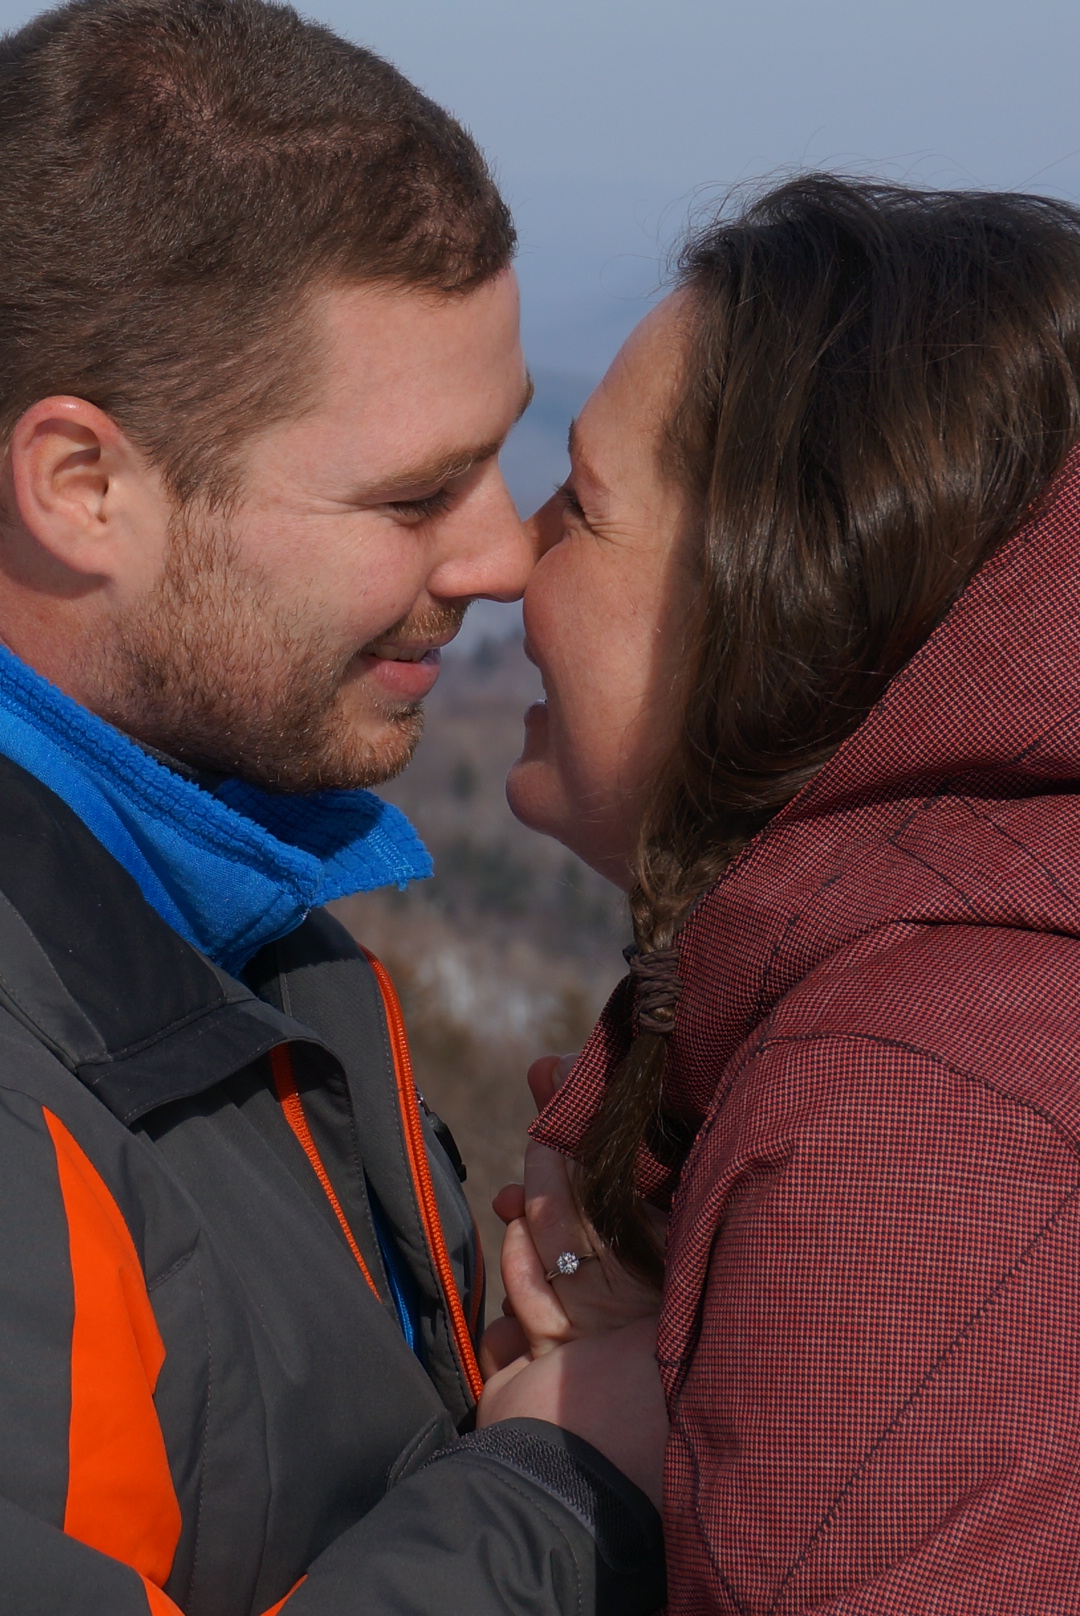 Image 12 of Sarah and Jimmy | The Perfect Mountaintop Proposal